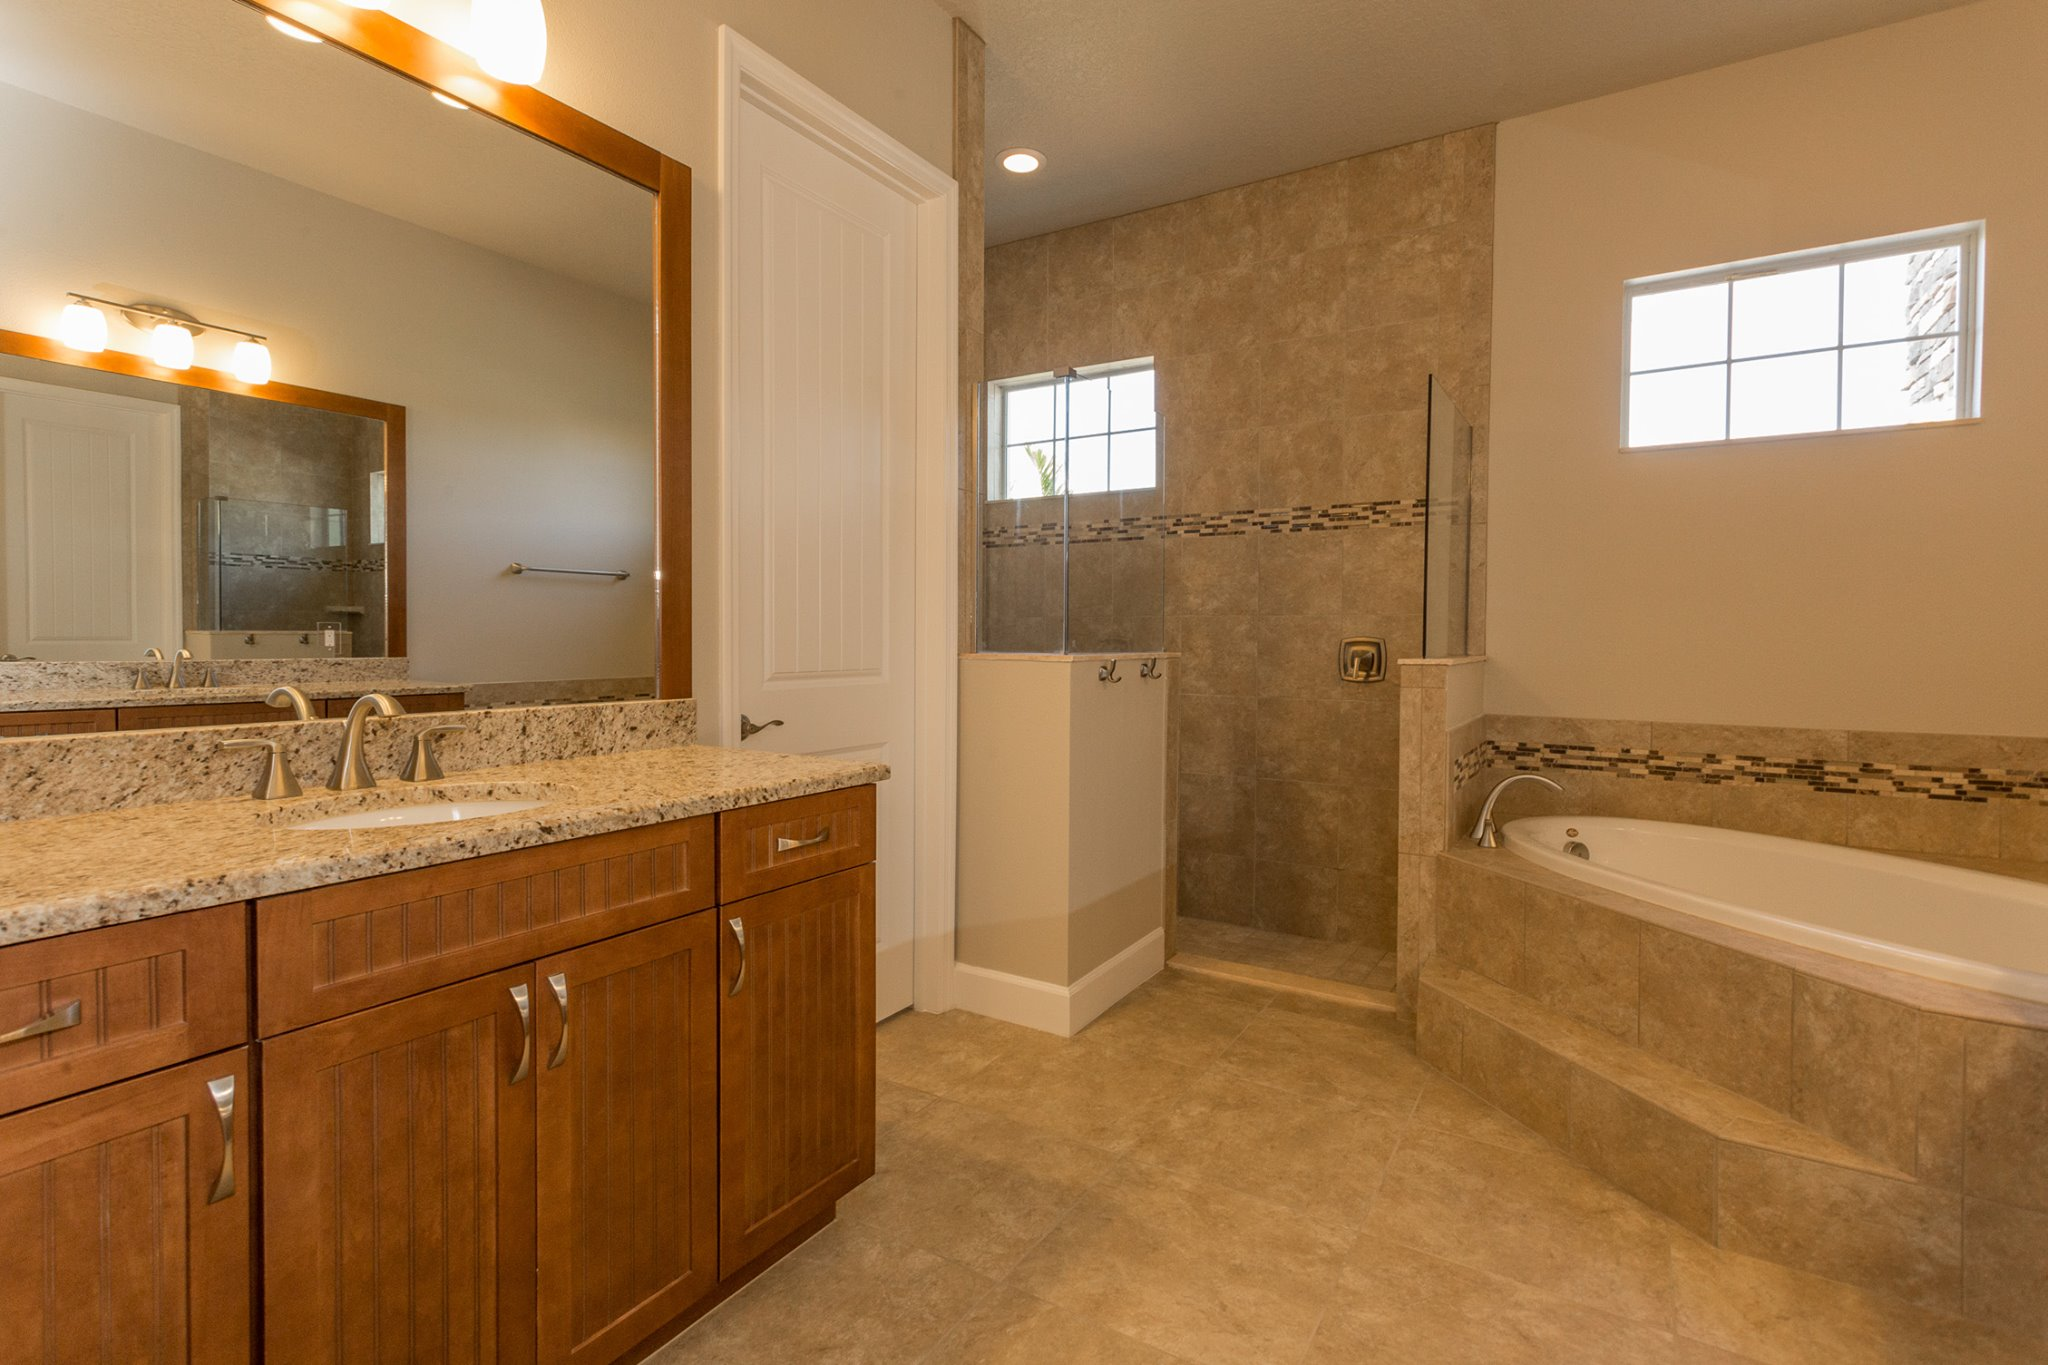 Custom Bathroom Vanities Melbourne Fl new melbourne home kitchen and bath with marsh cabinets and